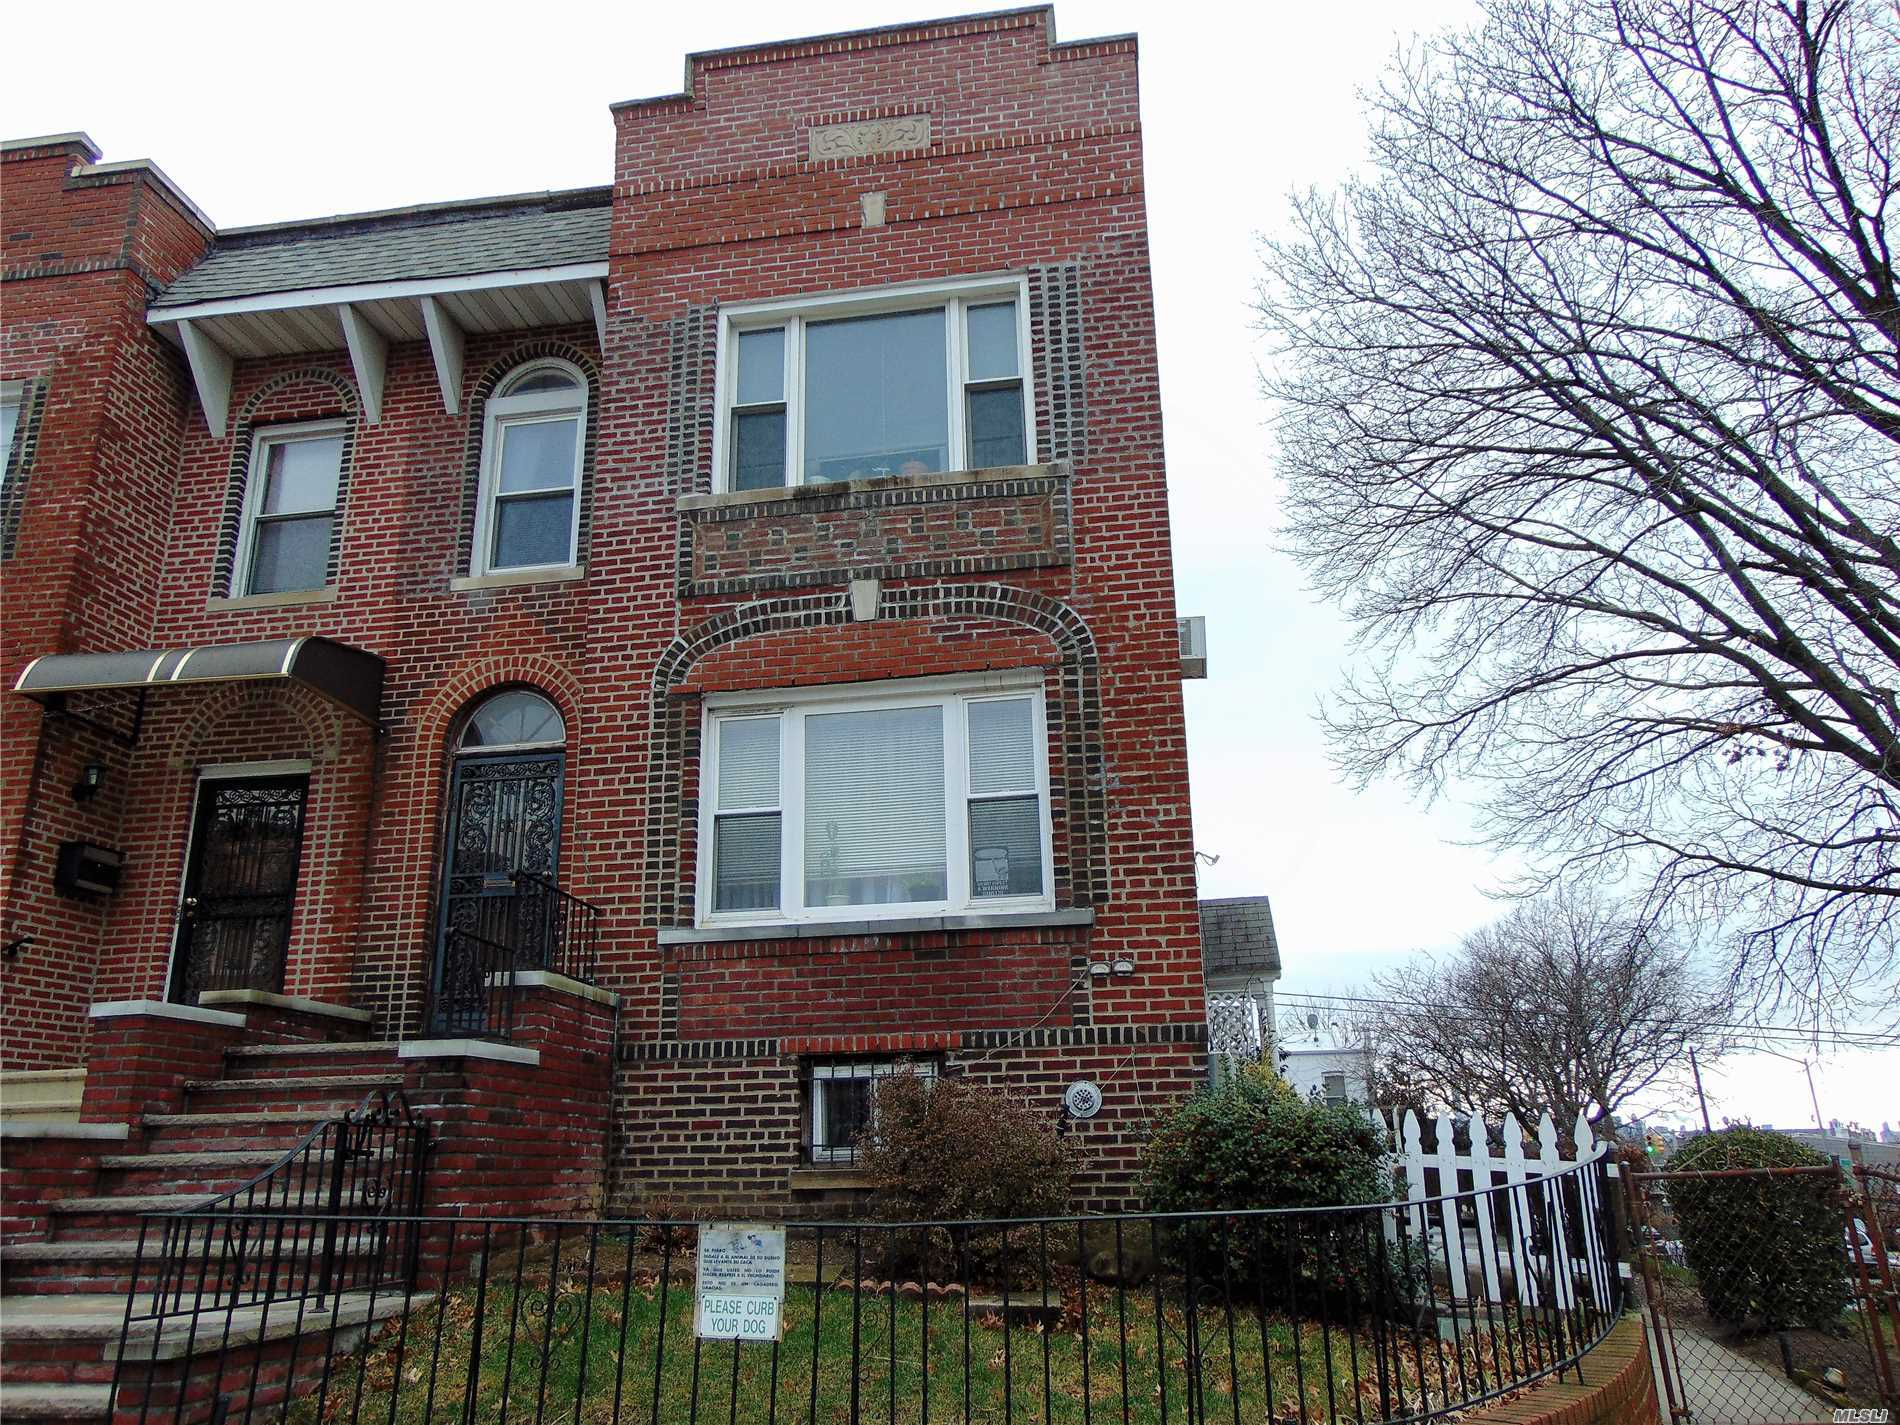 Owner Occupied, Gorgeous 2.5 Well Maintained Two Family Corner Home With Two Car Garage, Pvt Driveway & A Beautiful Yard In The Best Area Of East Elmhurst. Finished Basement Possible For 2 Separate Studios. 1st Fl-2 B/R Full Bath/Kitchen/Formal Dining/Living Room, Possible For 3rd B/R. 2nd Fl-3 B/R /Full Bath/Kitchen/Formal Dining/Living Room, Possible For 4th Bedroom. 3rd Fl-Huge Bedroom W/Beautiful Views Of Manhattan. Side Entrance To All Floors. Chandeliers Will Be Replaced W/Std Lights.